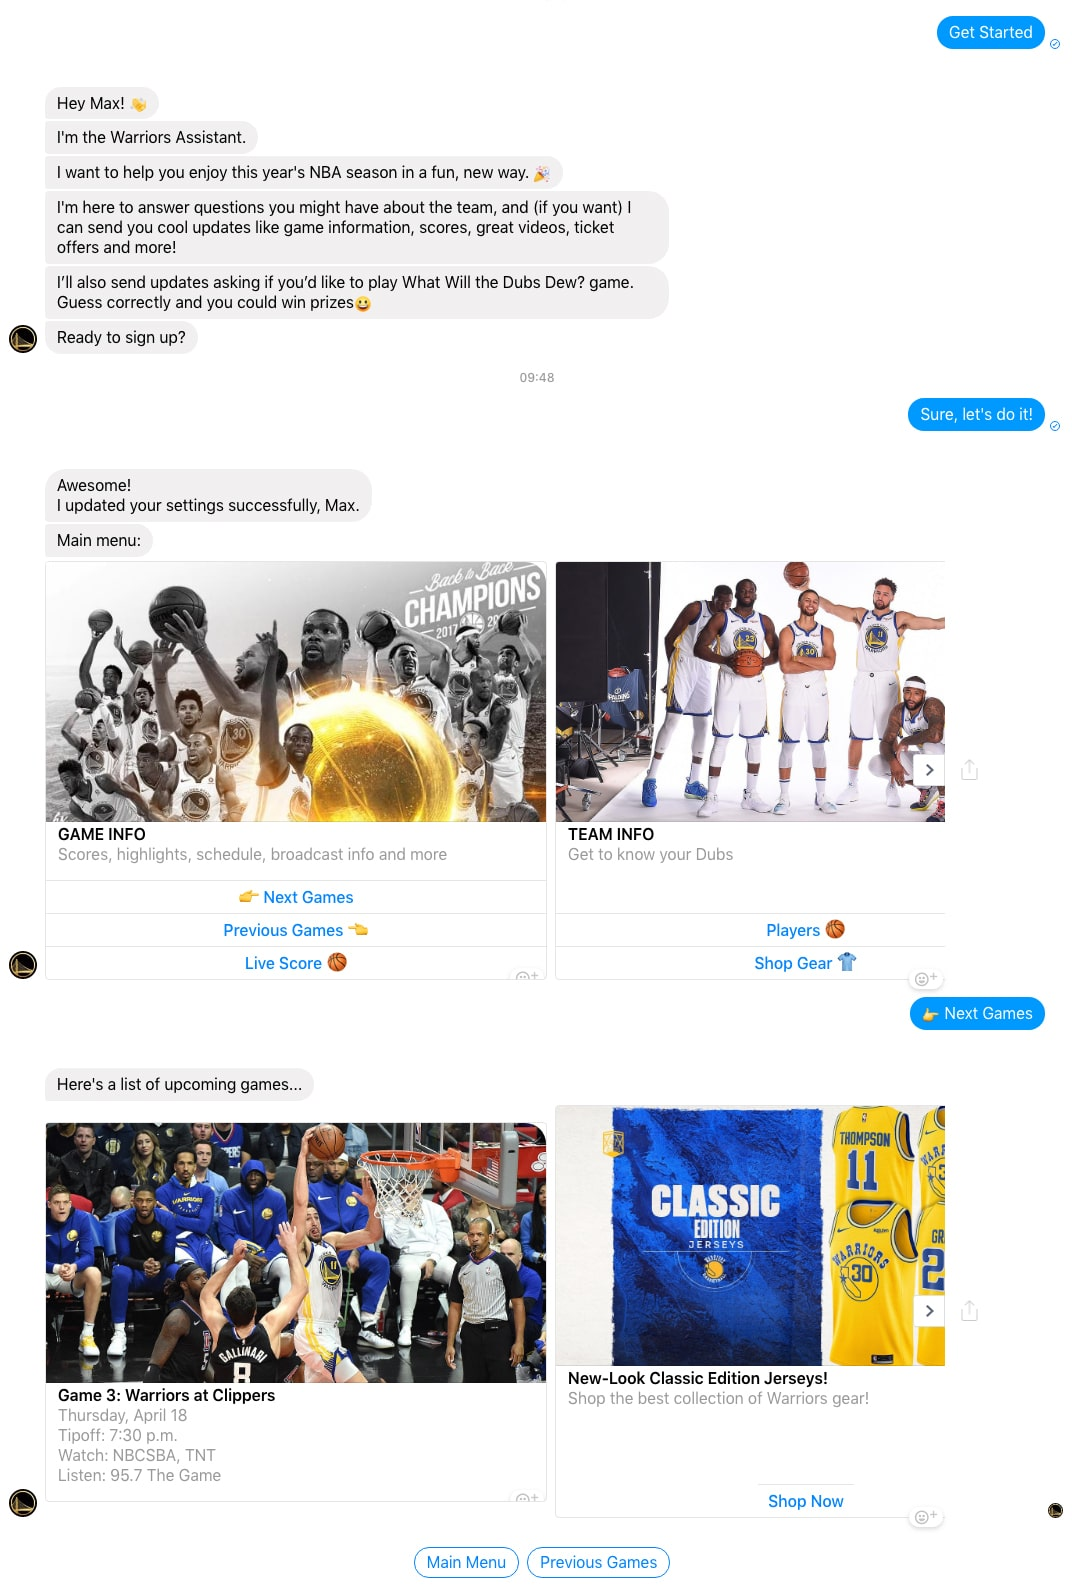 Facebook Messenger Bot: Golden State Warriors